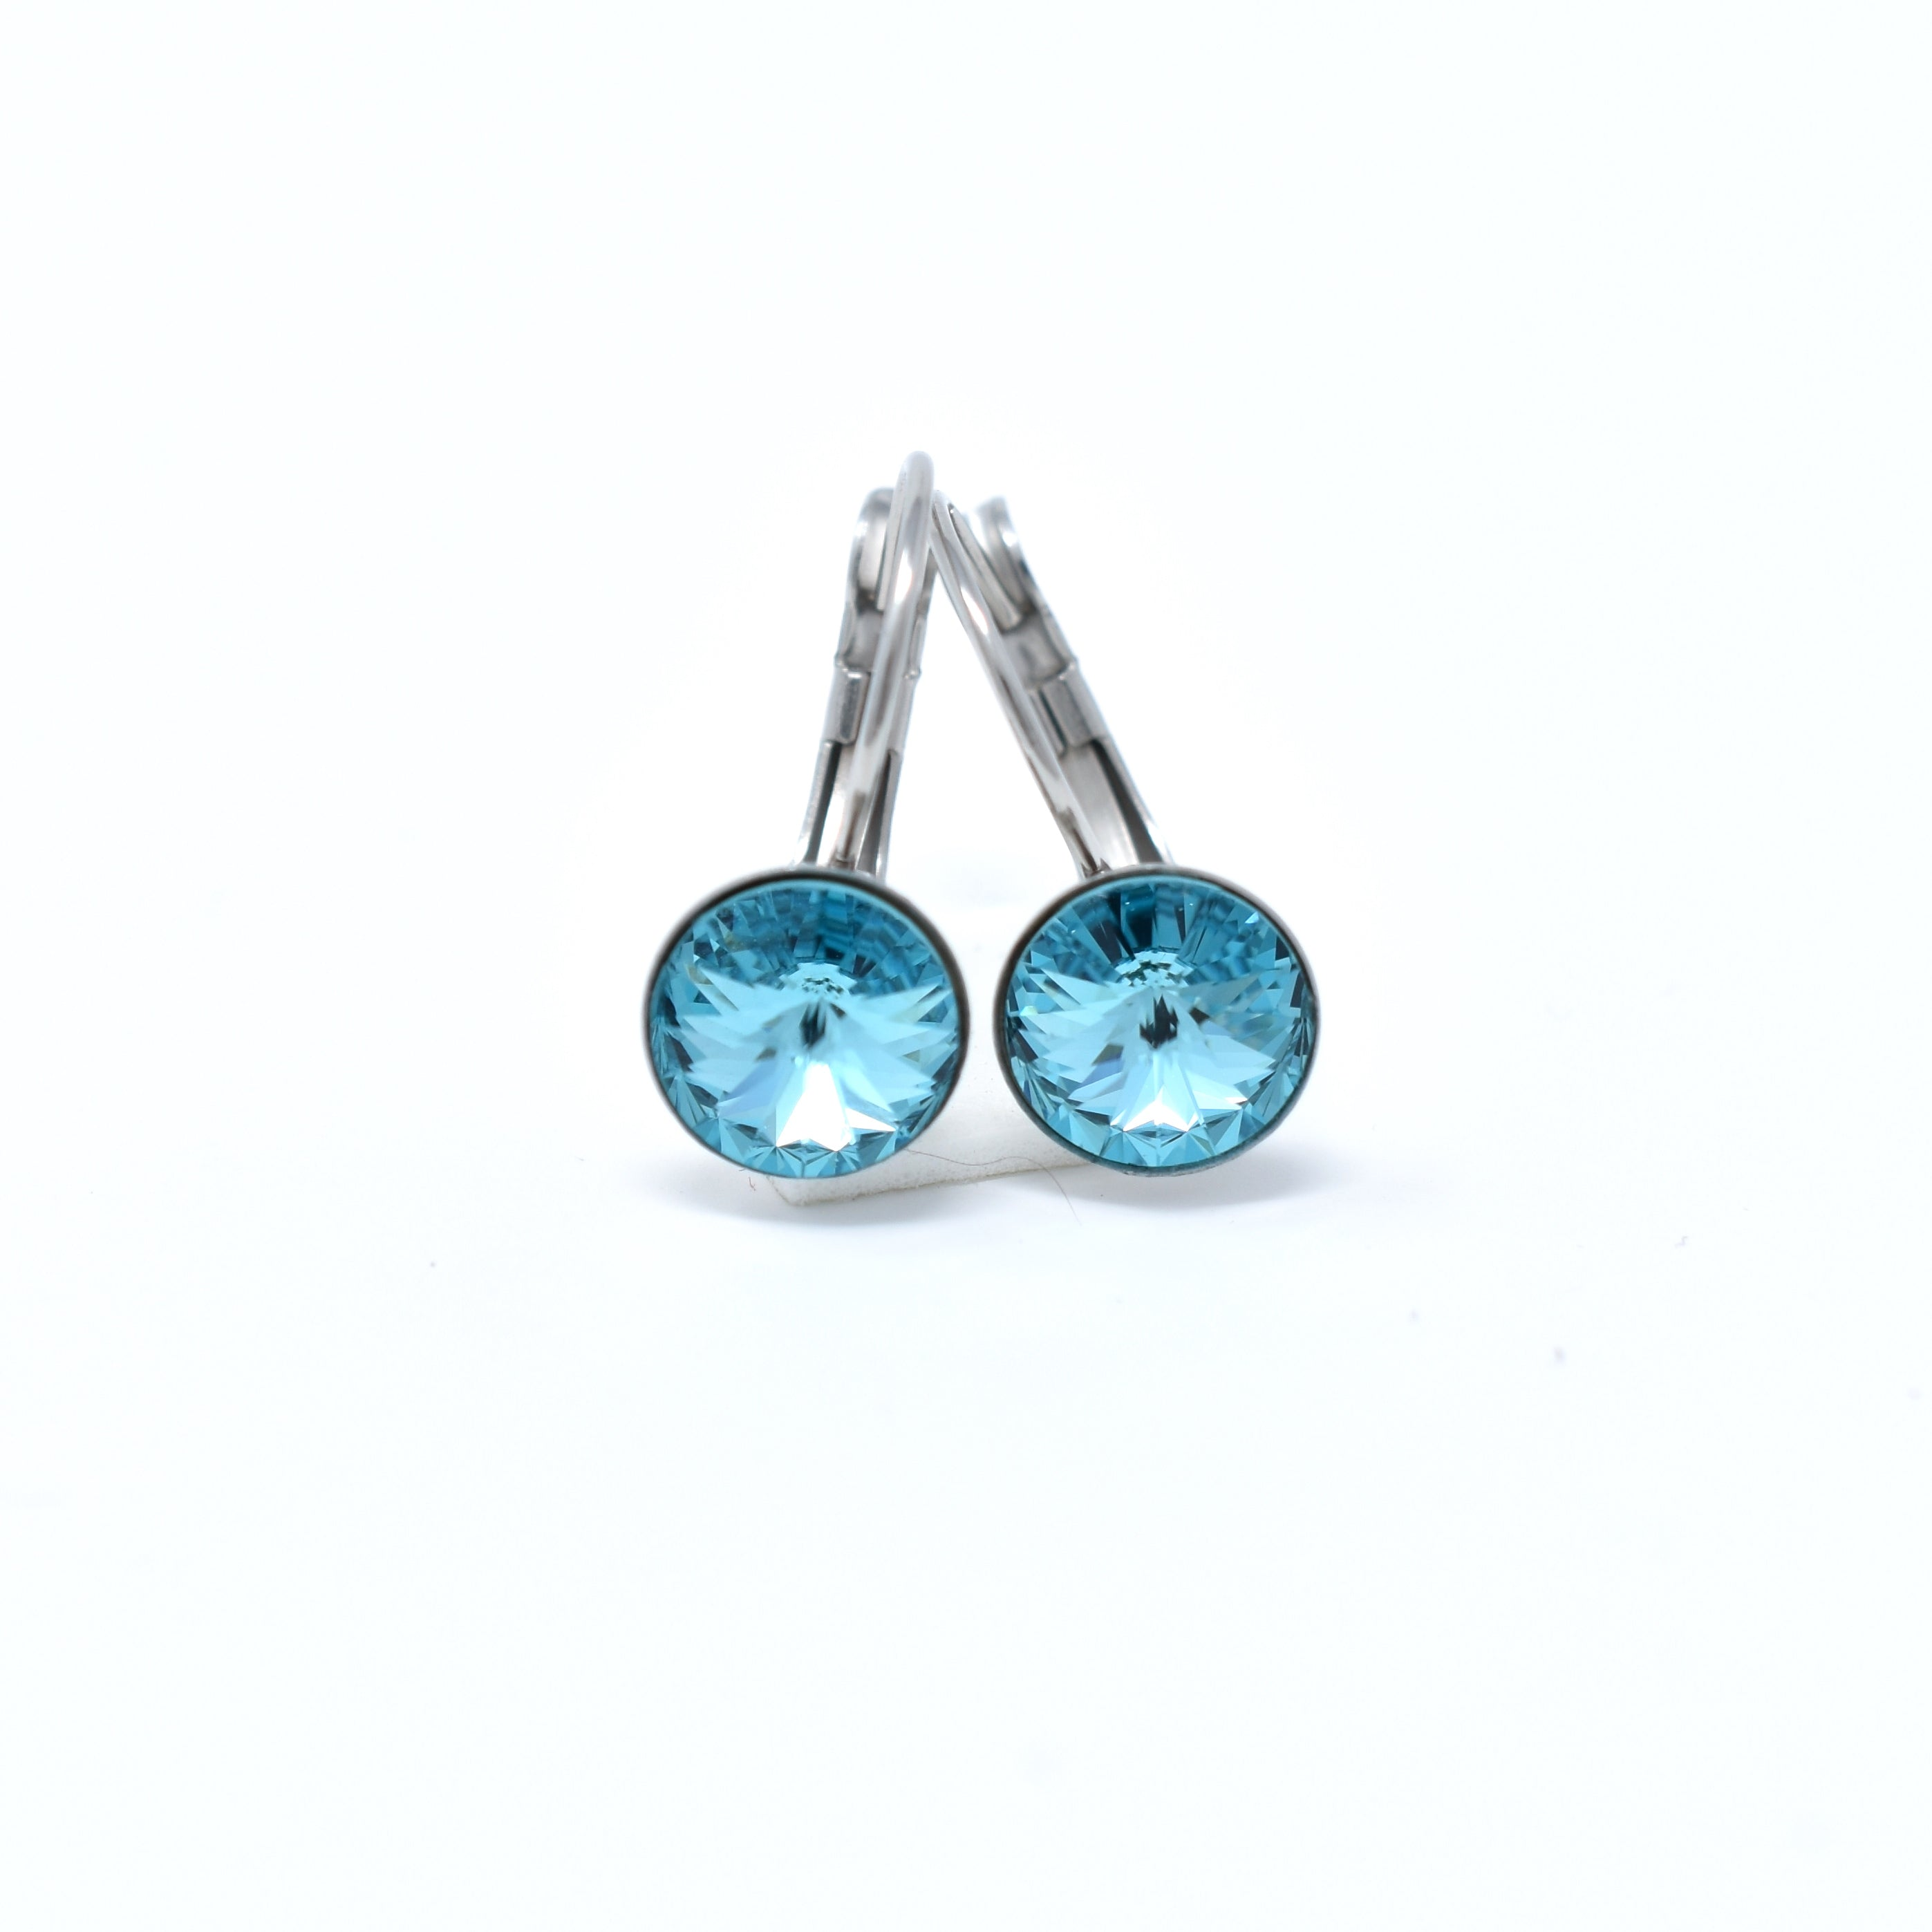 Stainless Steel Round Swarovski Drop Earrings - 8mm